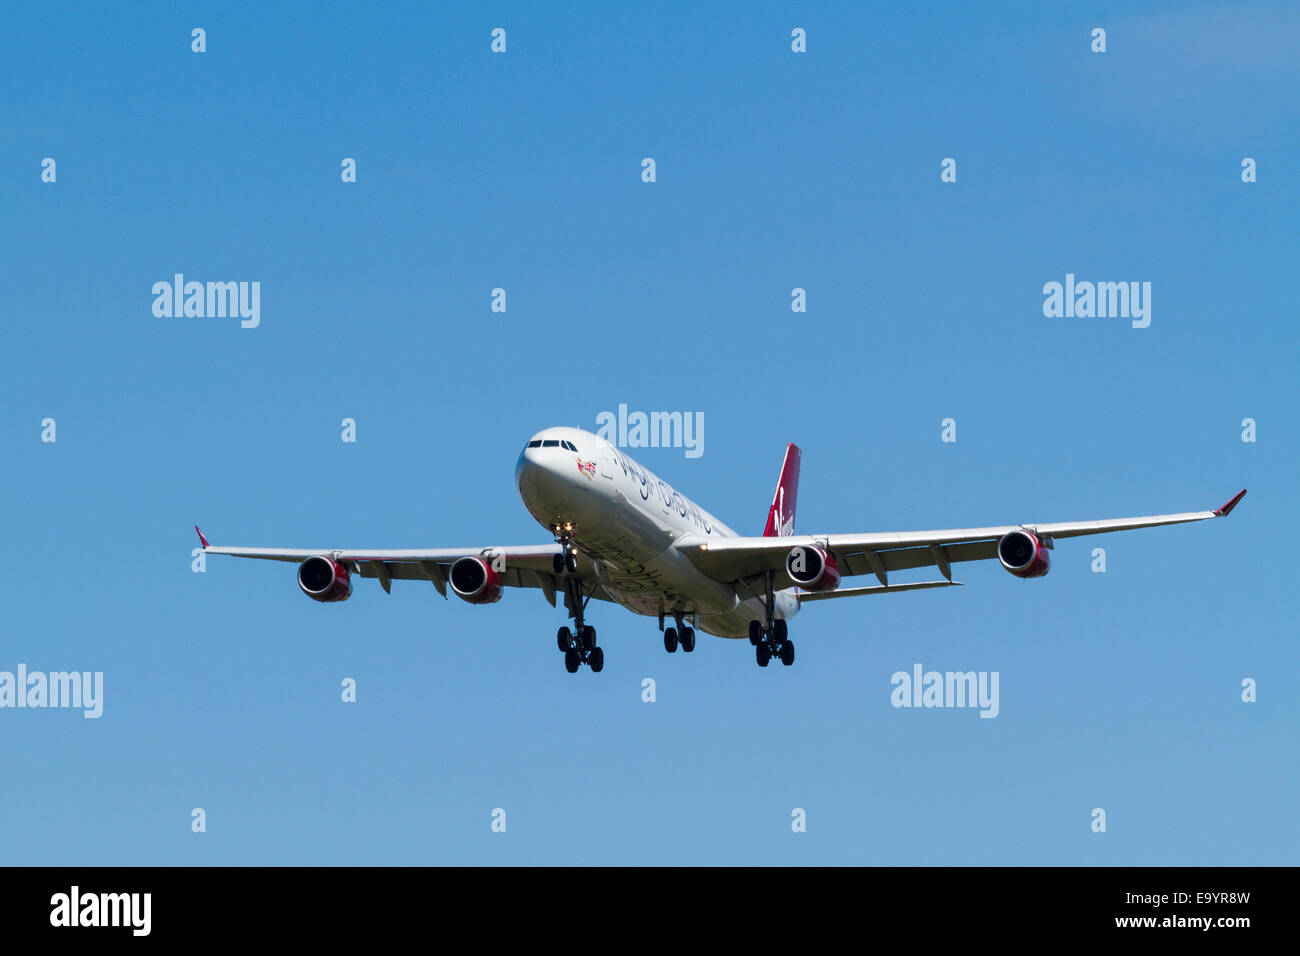 Virgin Atlantic Airbus A340-300, G-VELD, named African Queen, on its approach for landing at London Heathrow, England, - Stock Image